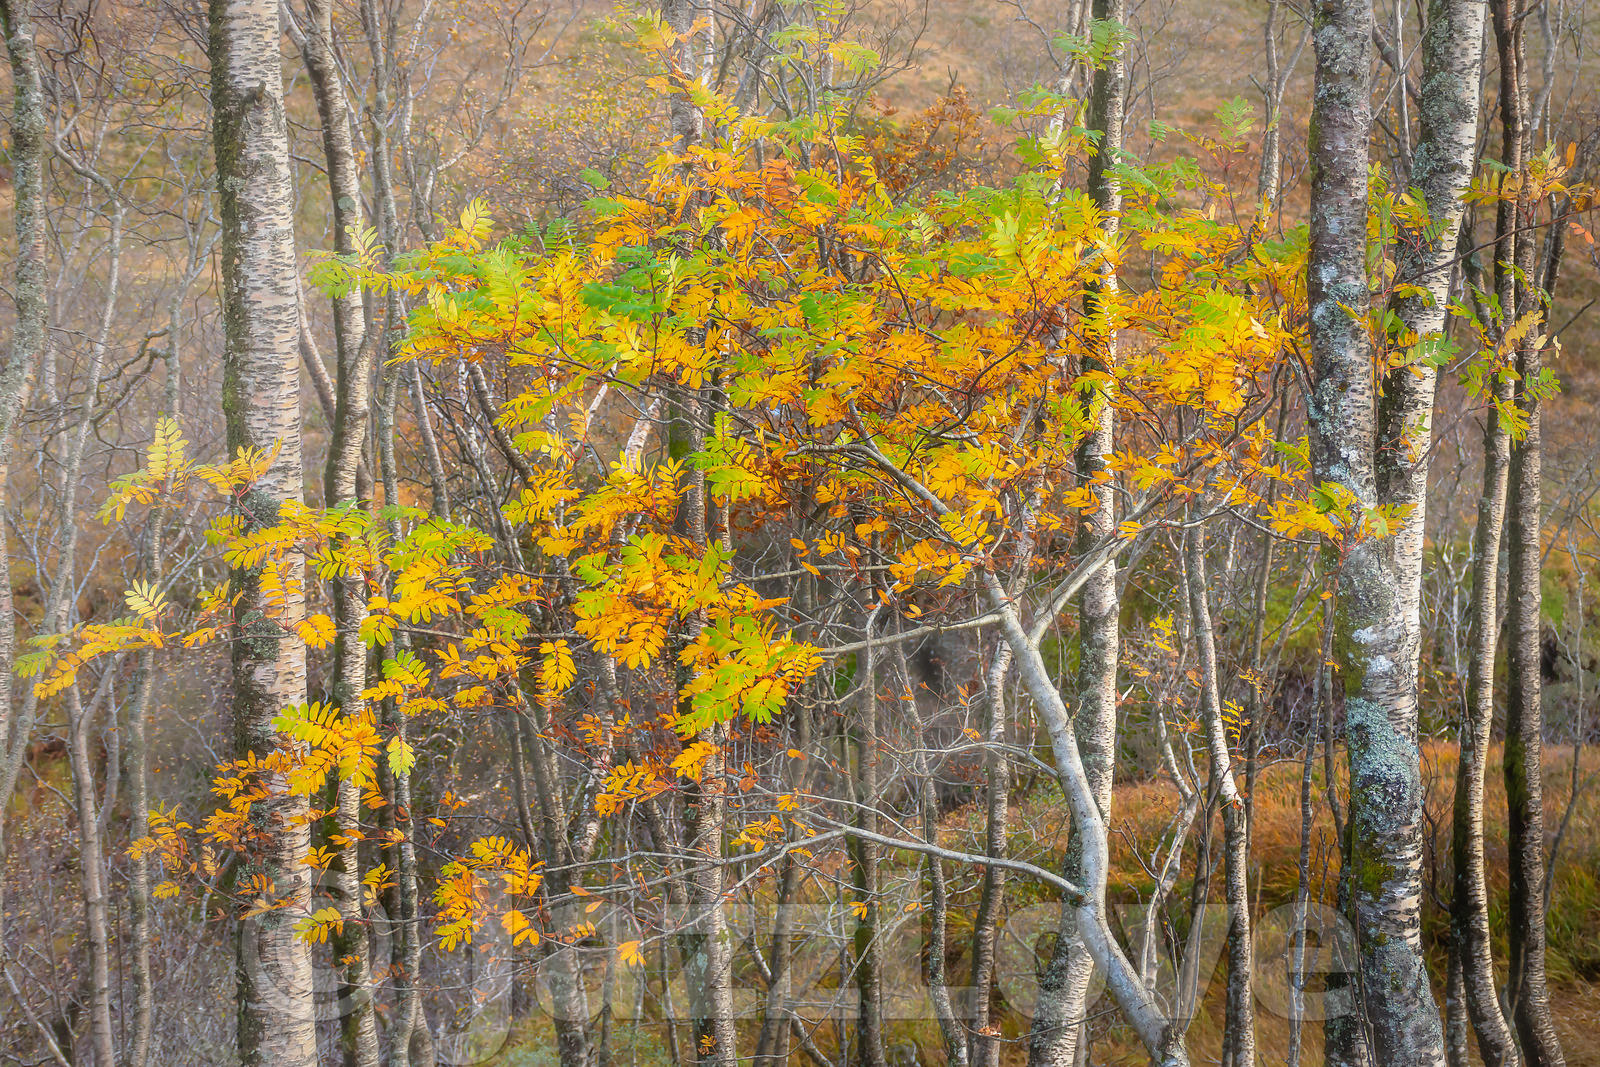 Ash tree with leaves changing colour growing in foggy birch woodland in autumn